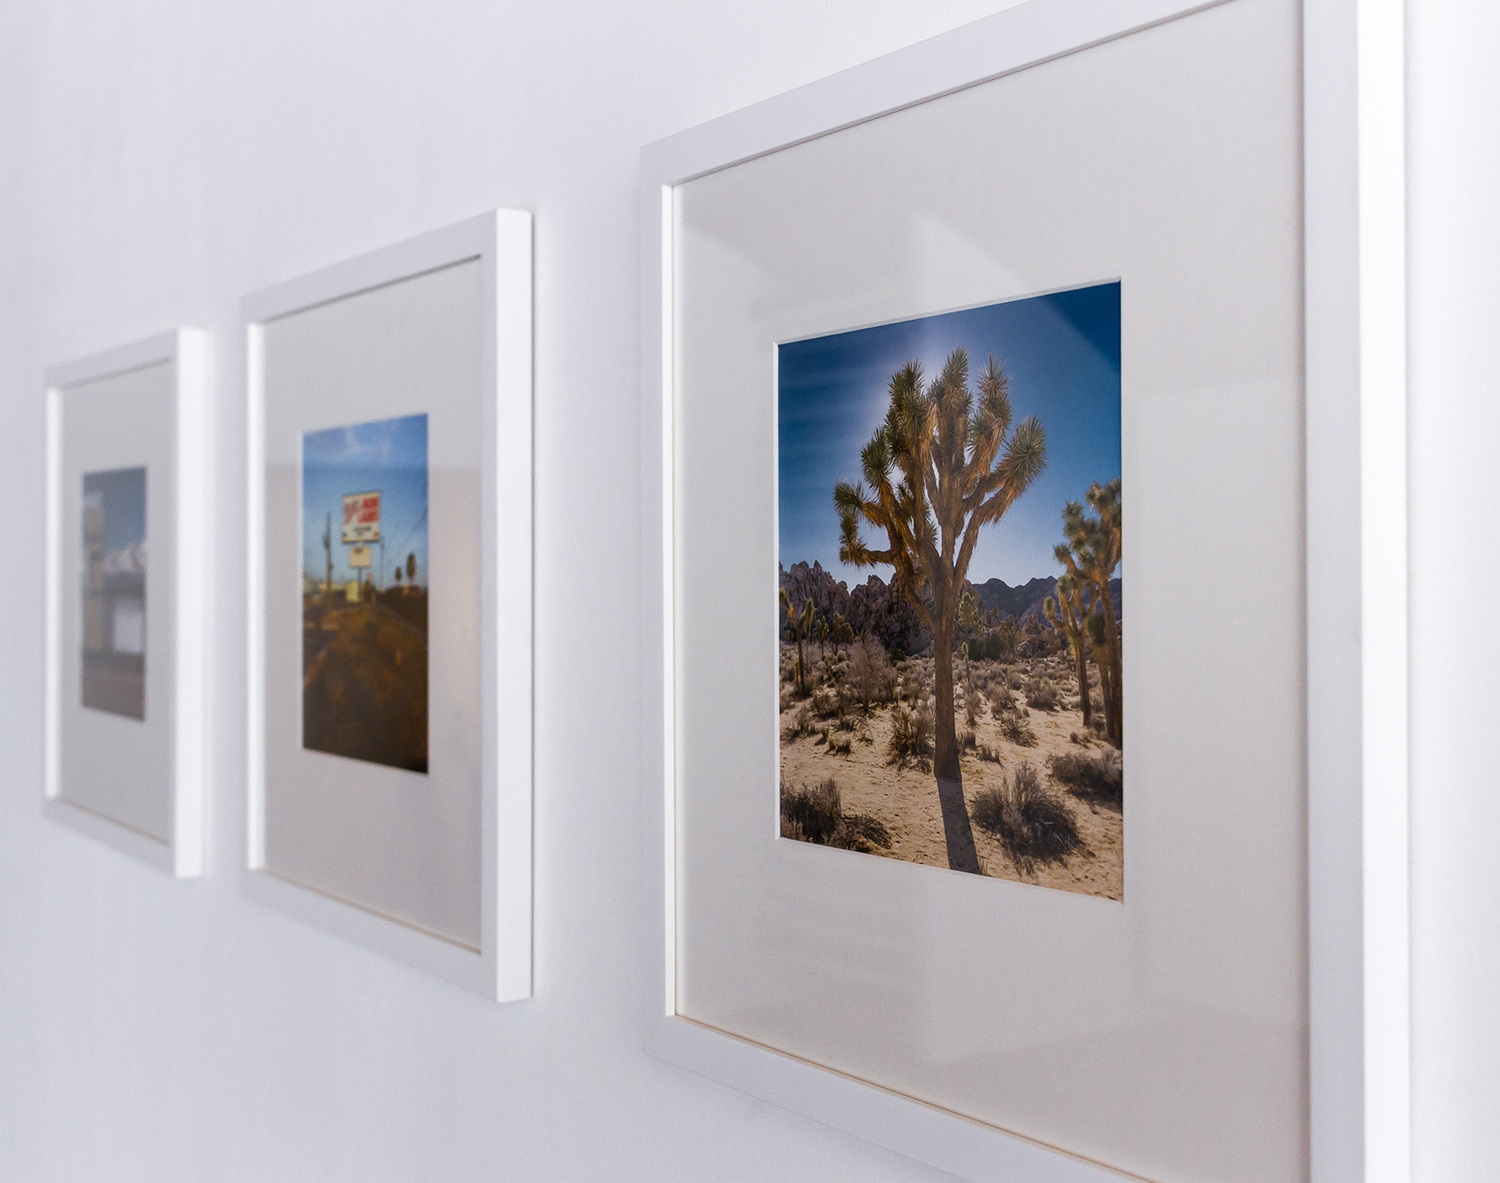 Editions - ElliottHalls Editions are a series of smaller format, affordable pieces, exclusive to the gallery- a perfect way to start your collection.Find out more.